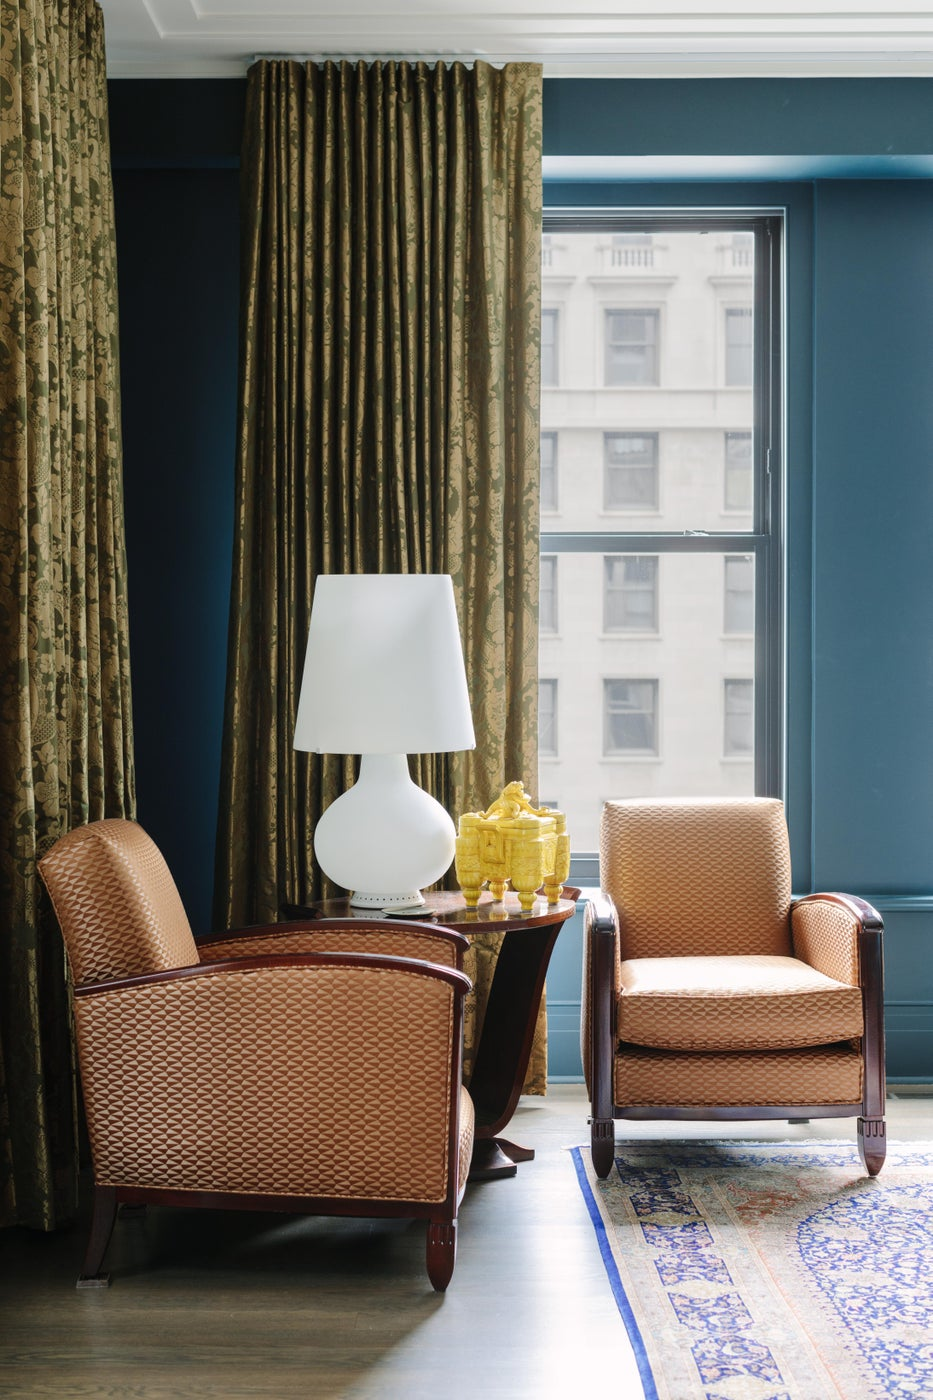 Art Deco Bedroom with teal walls, patterned silk drapes, and Chinese silk rug